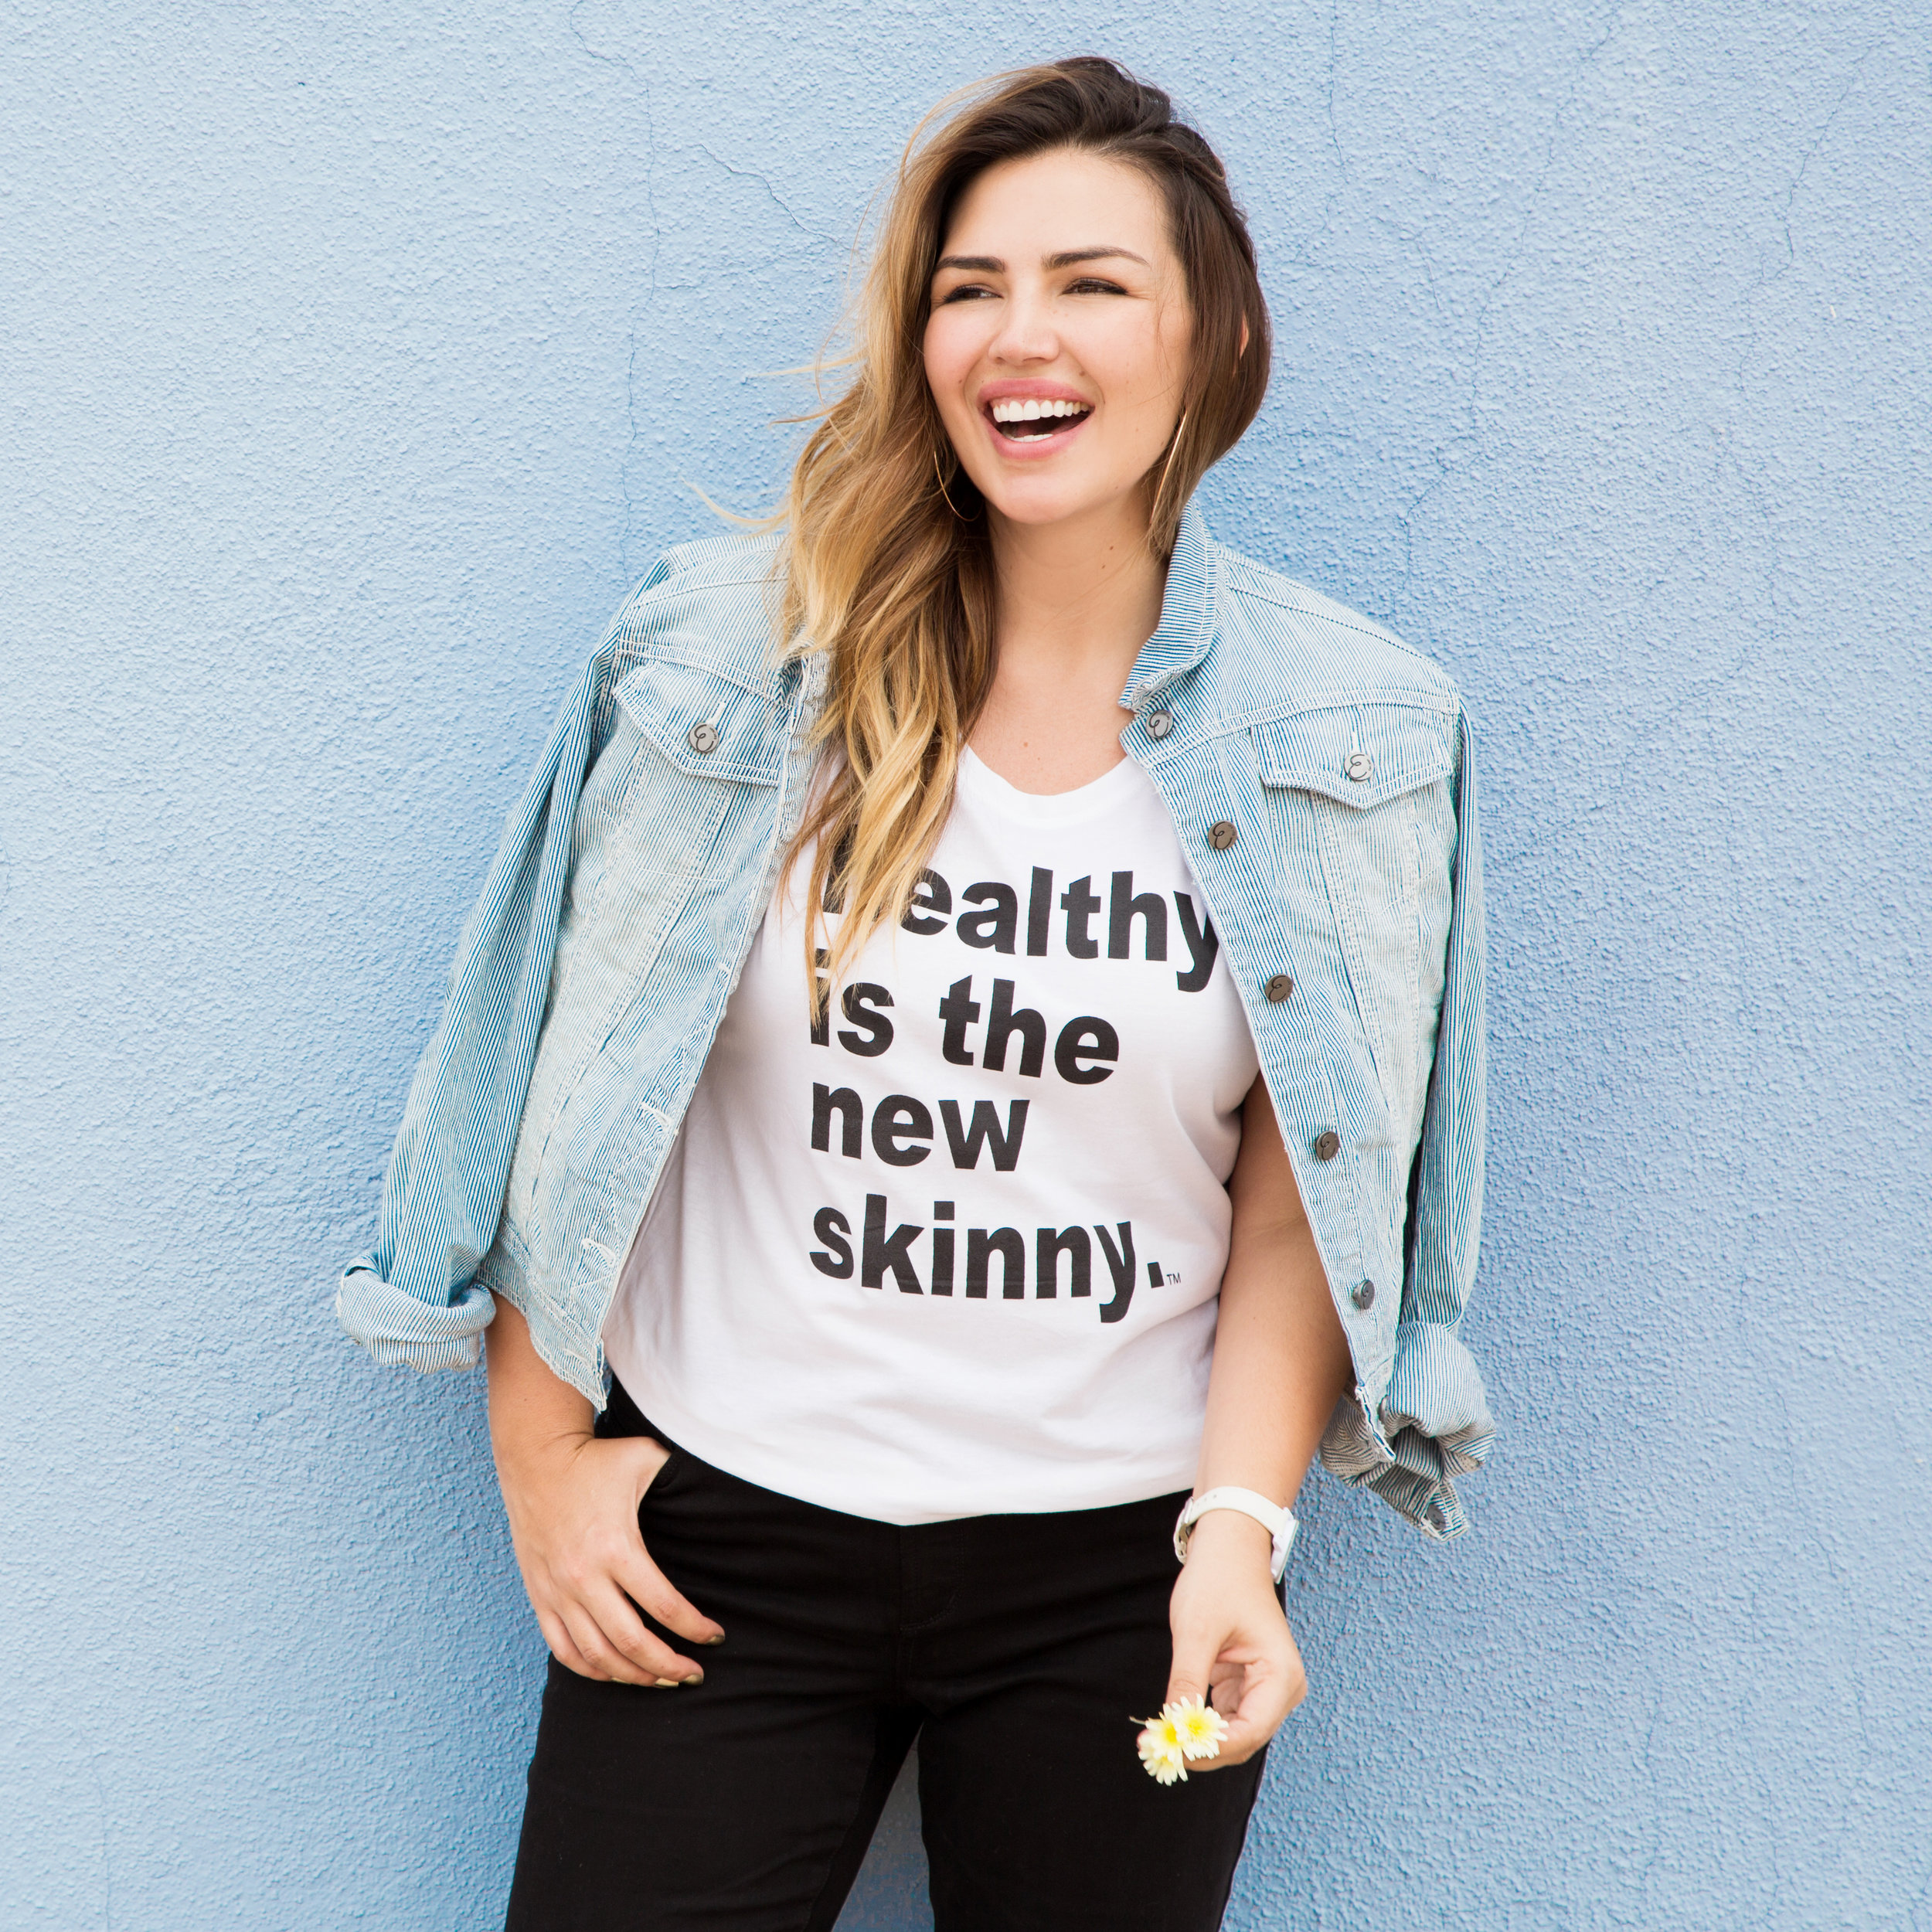 Featured Interview with Katie H. Willcox, the Founder of Healthy is the New Skinny